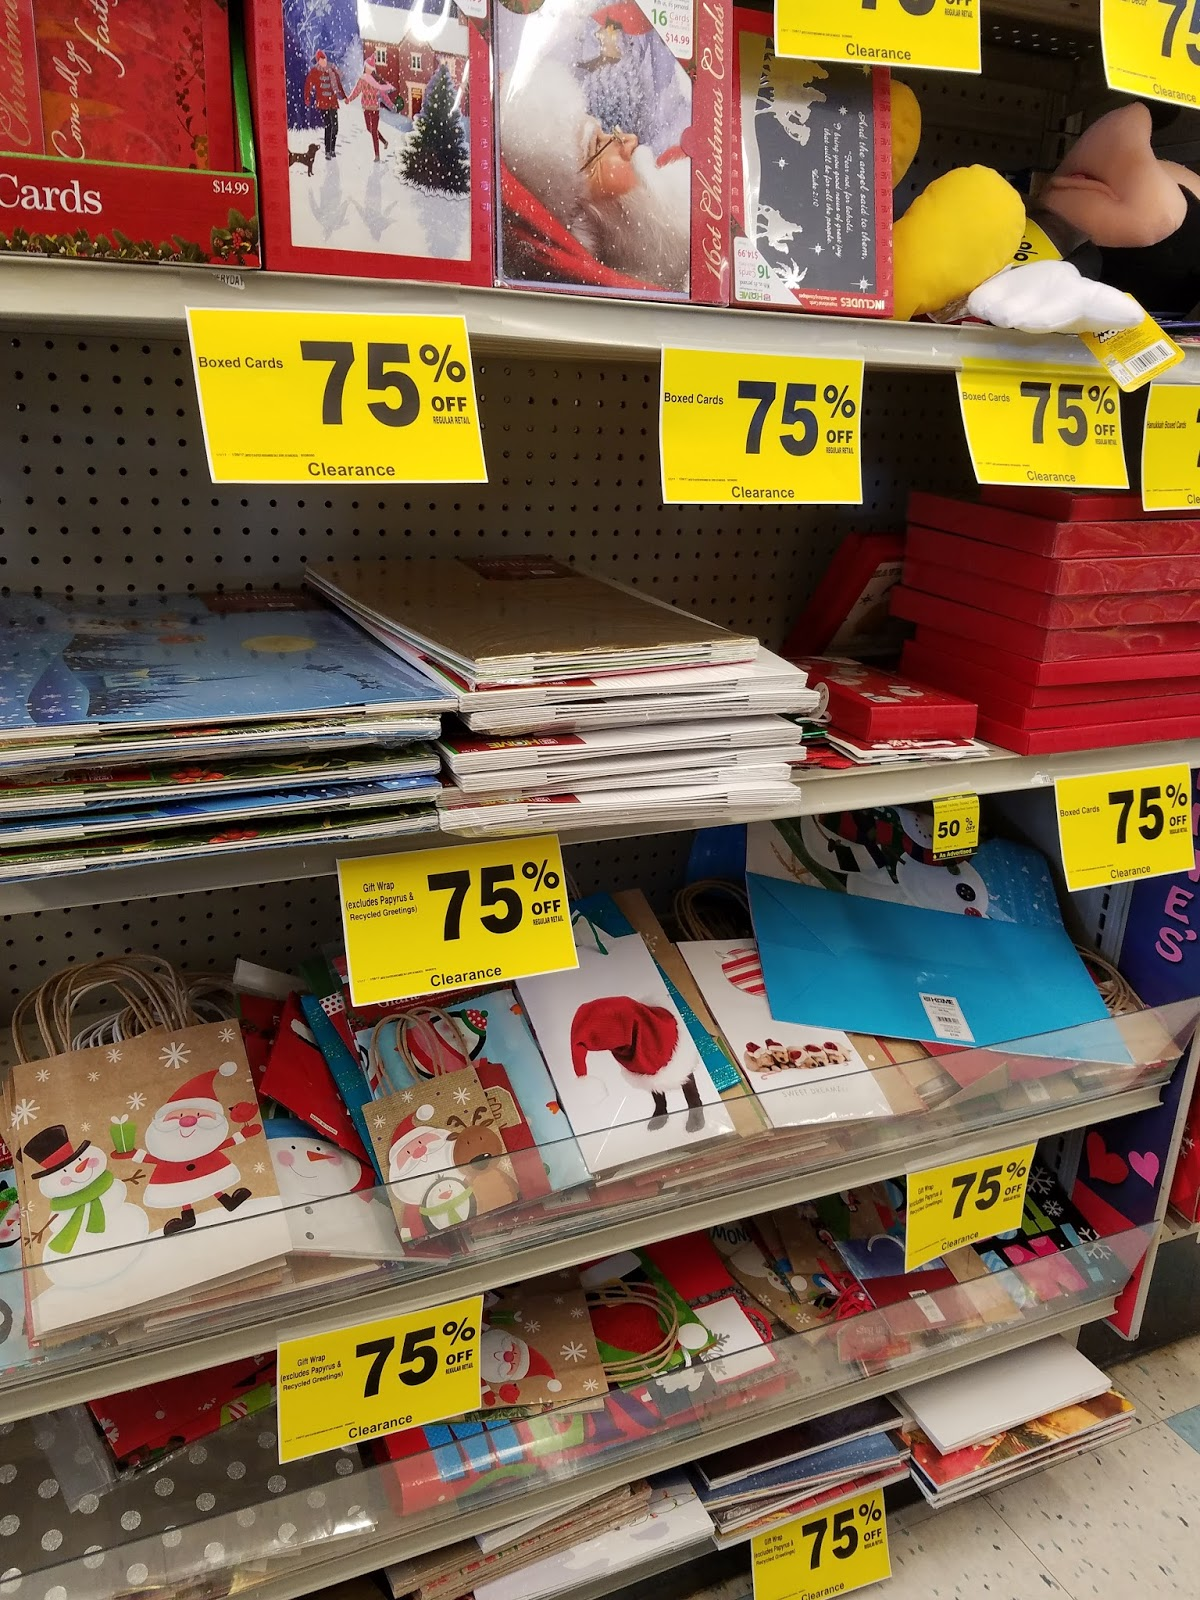 Donevas\' Shopping Cart: CHRISTMAS STILL 75% OFF AT RITE AID